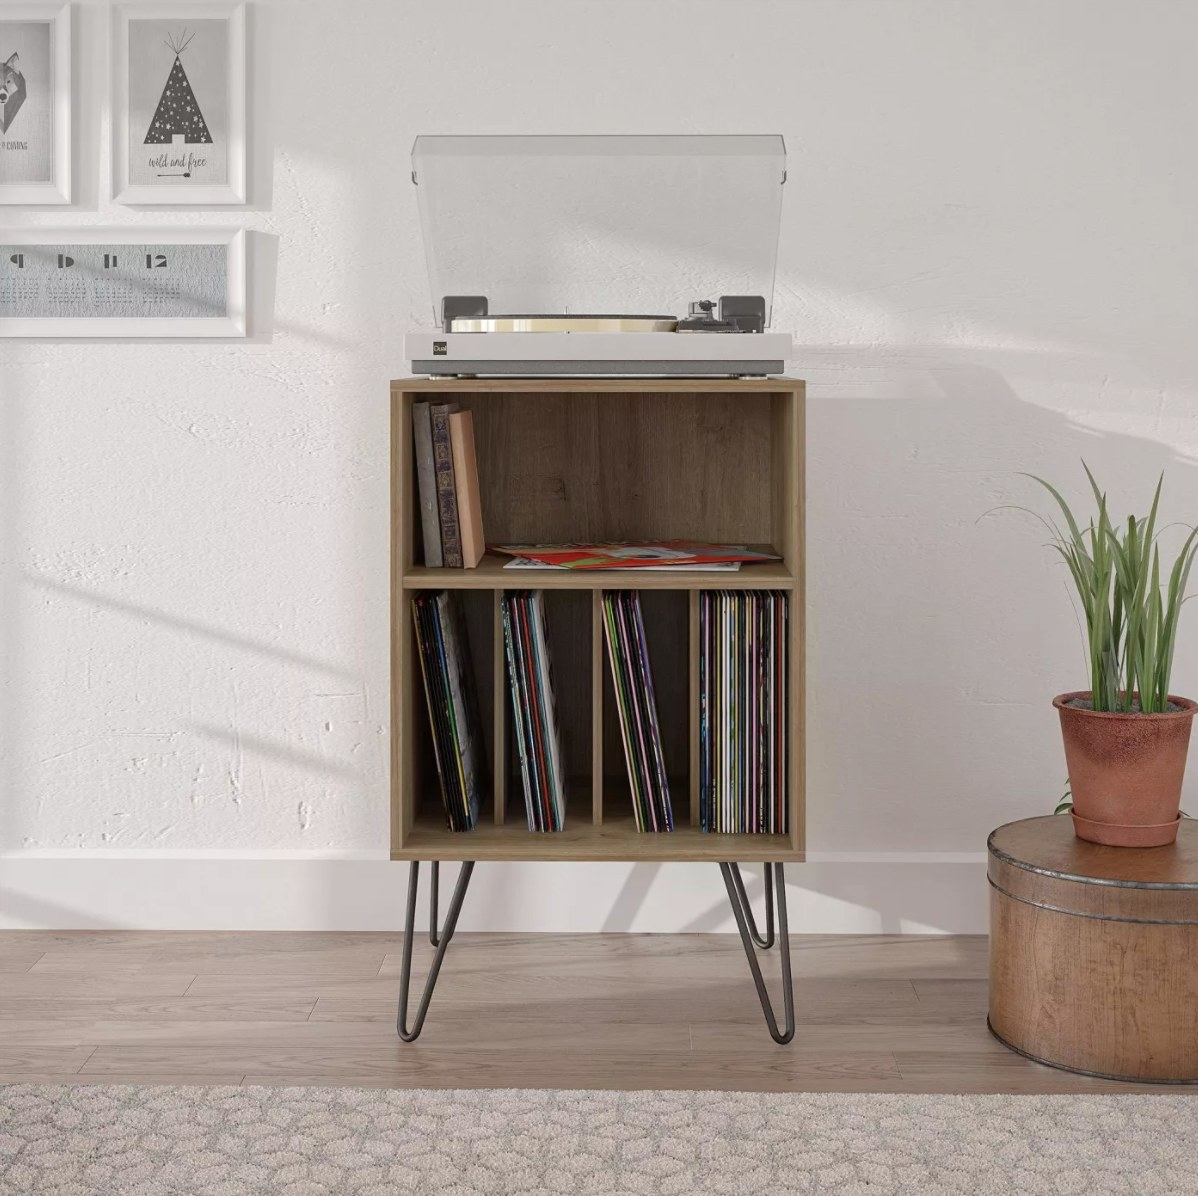 The reclaimed oak vinyl record stand holding a record player and tens of records